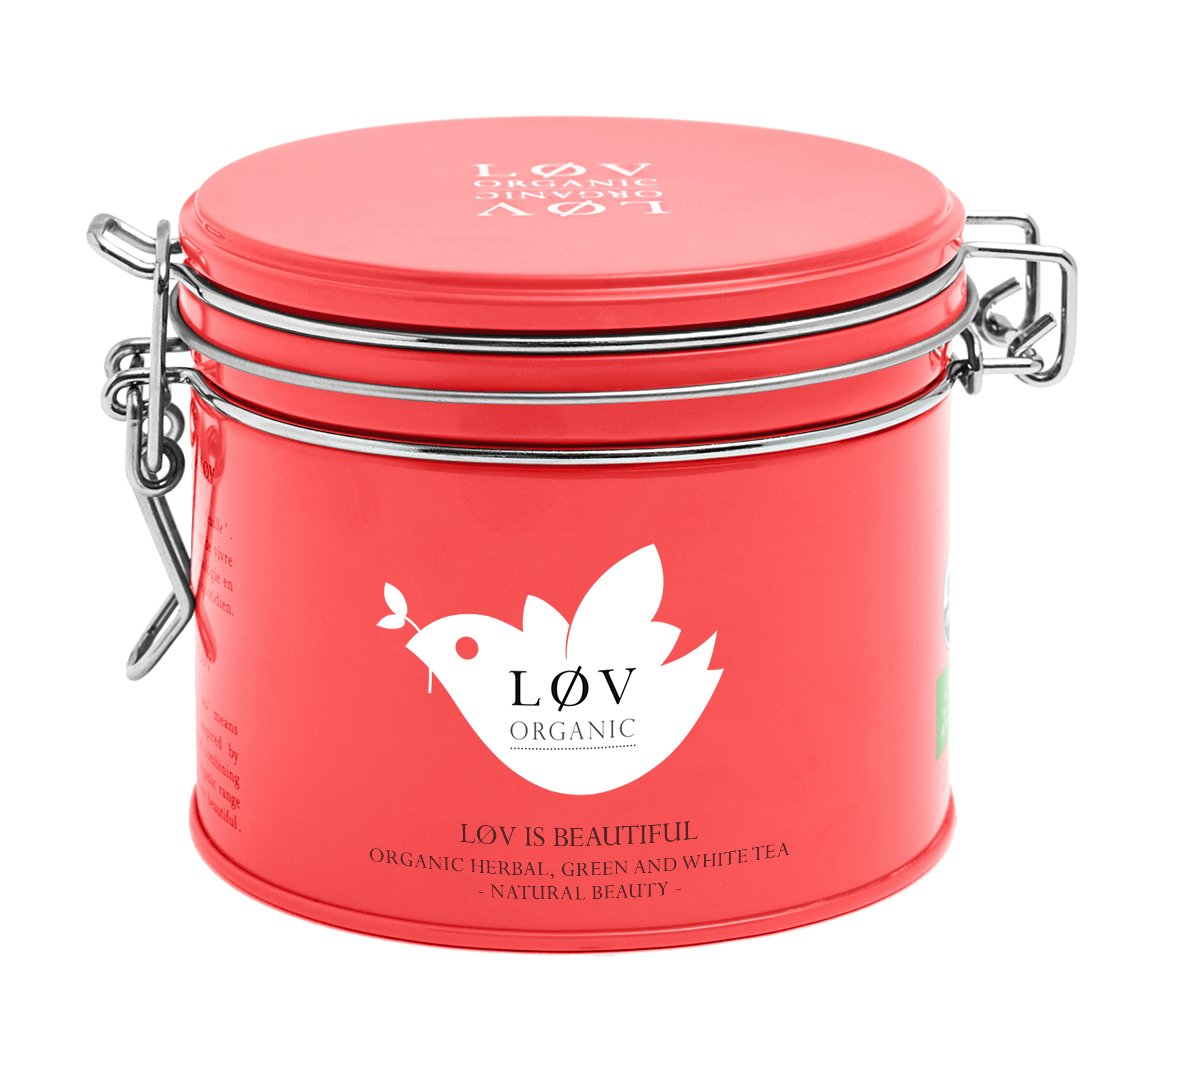 Løv Organic Løv is Beautiful Green Tea, Rooibos, and White Tea - Natural Fruit Flavors - Hot or Iced Tea (3.5oz Loose Tea Tin - 40 Servings) by LØV ORGANIC